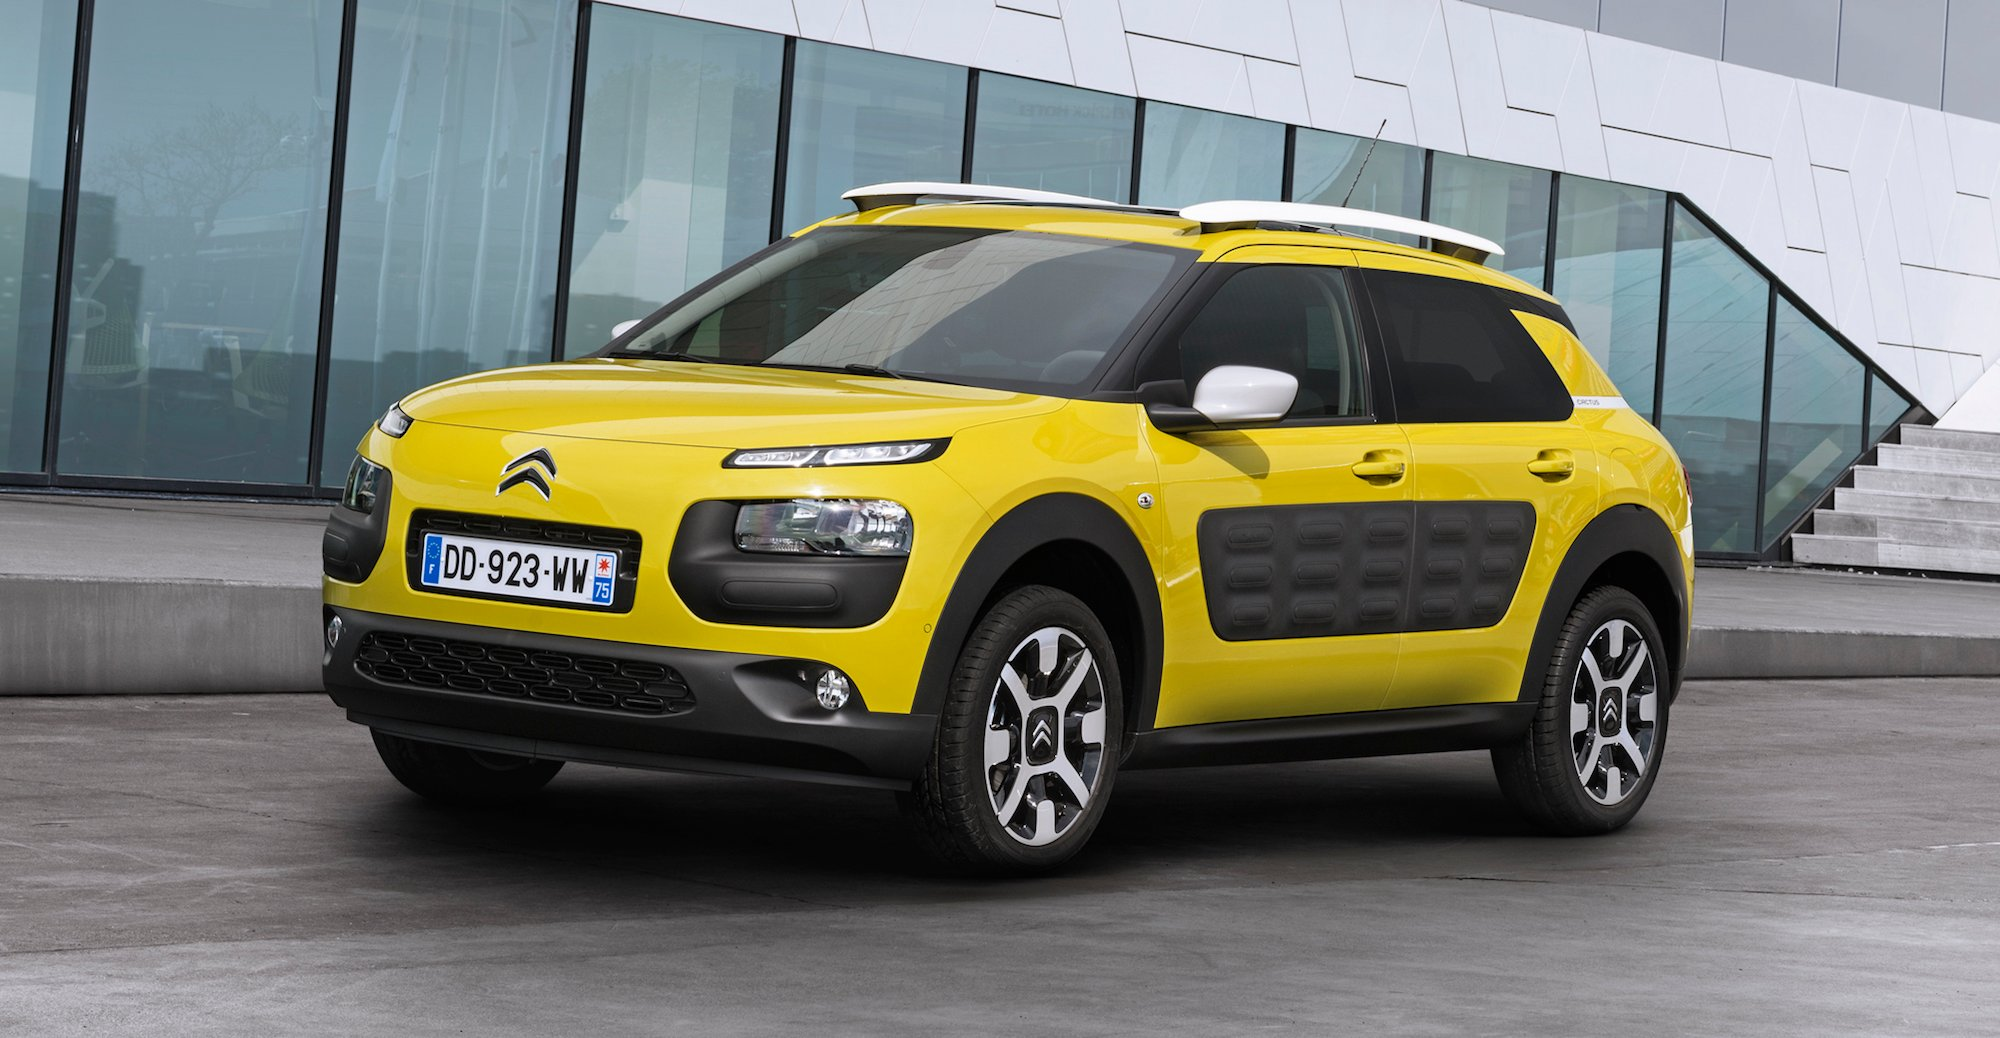 citroen c4 cactus preliminary specifications revealed. Black Bedroom Furniture Sets. Home Design Ideas